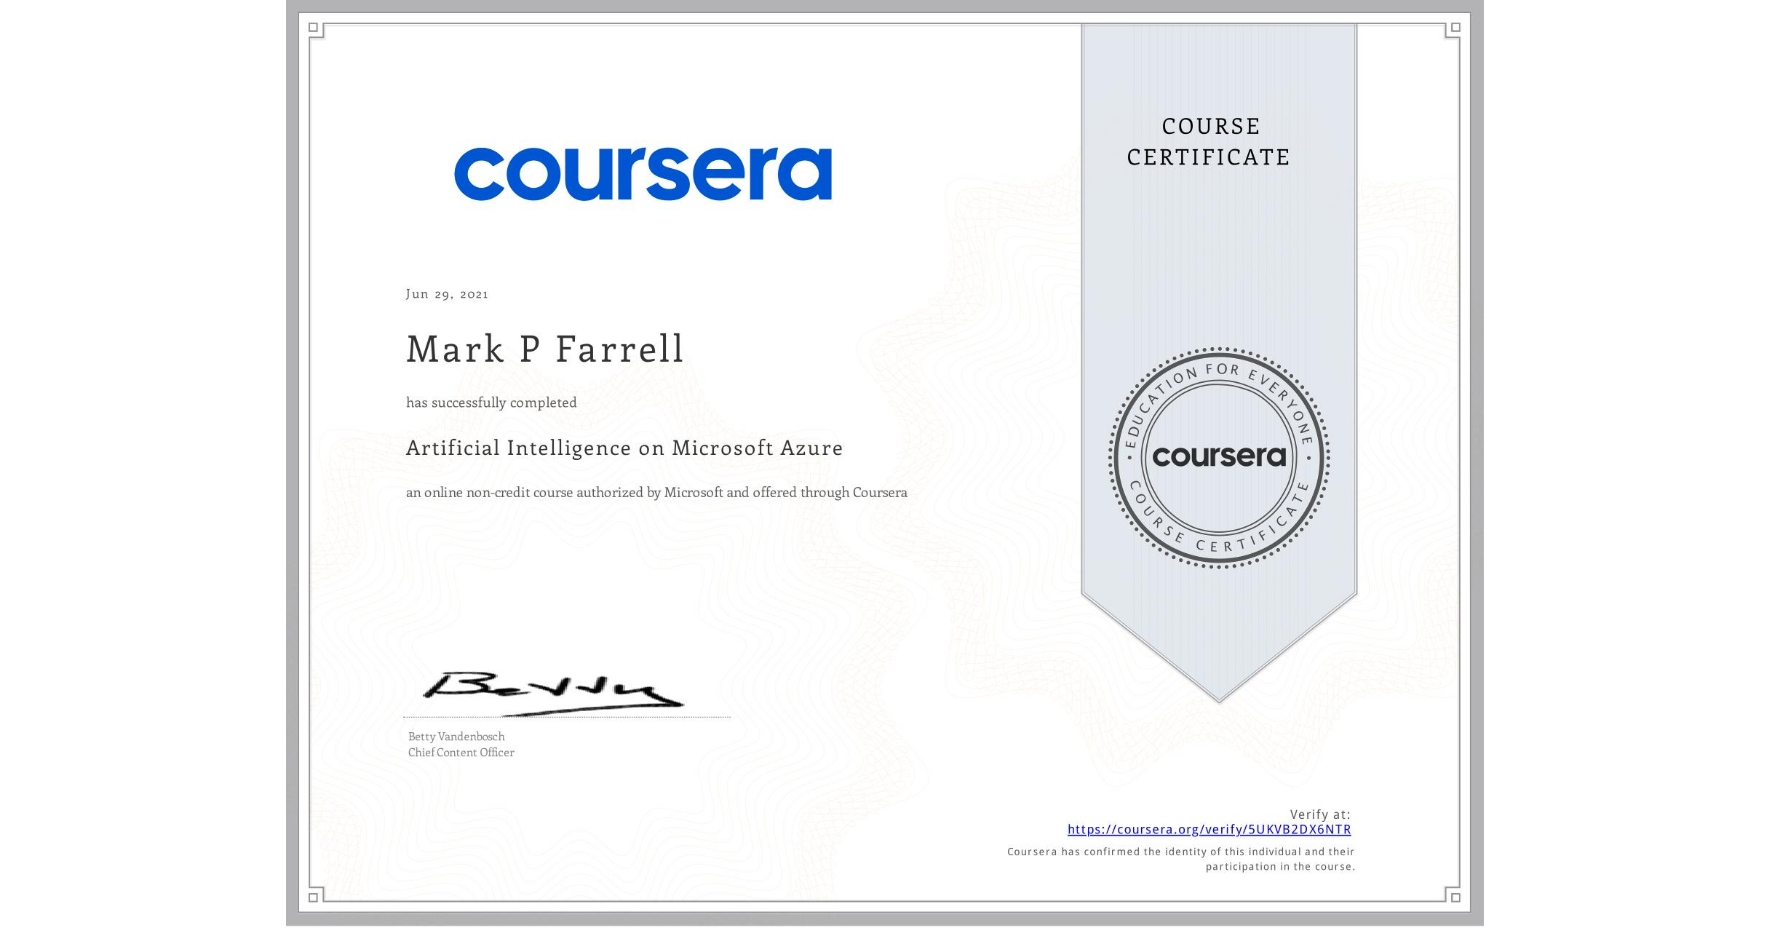 View certificate for Mark P Farrell, Artificial Intelligence on Microsoft Azure, an online non-credit course authorized by Microsoft and offered through Coursera